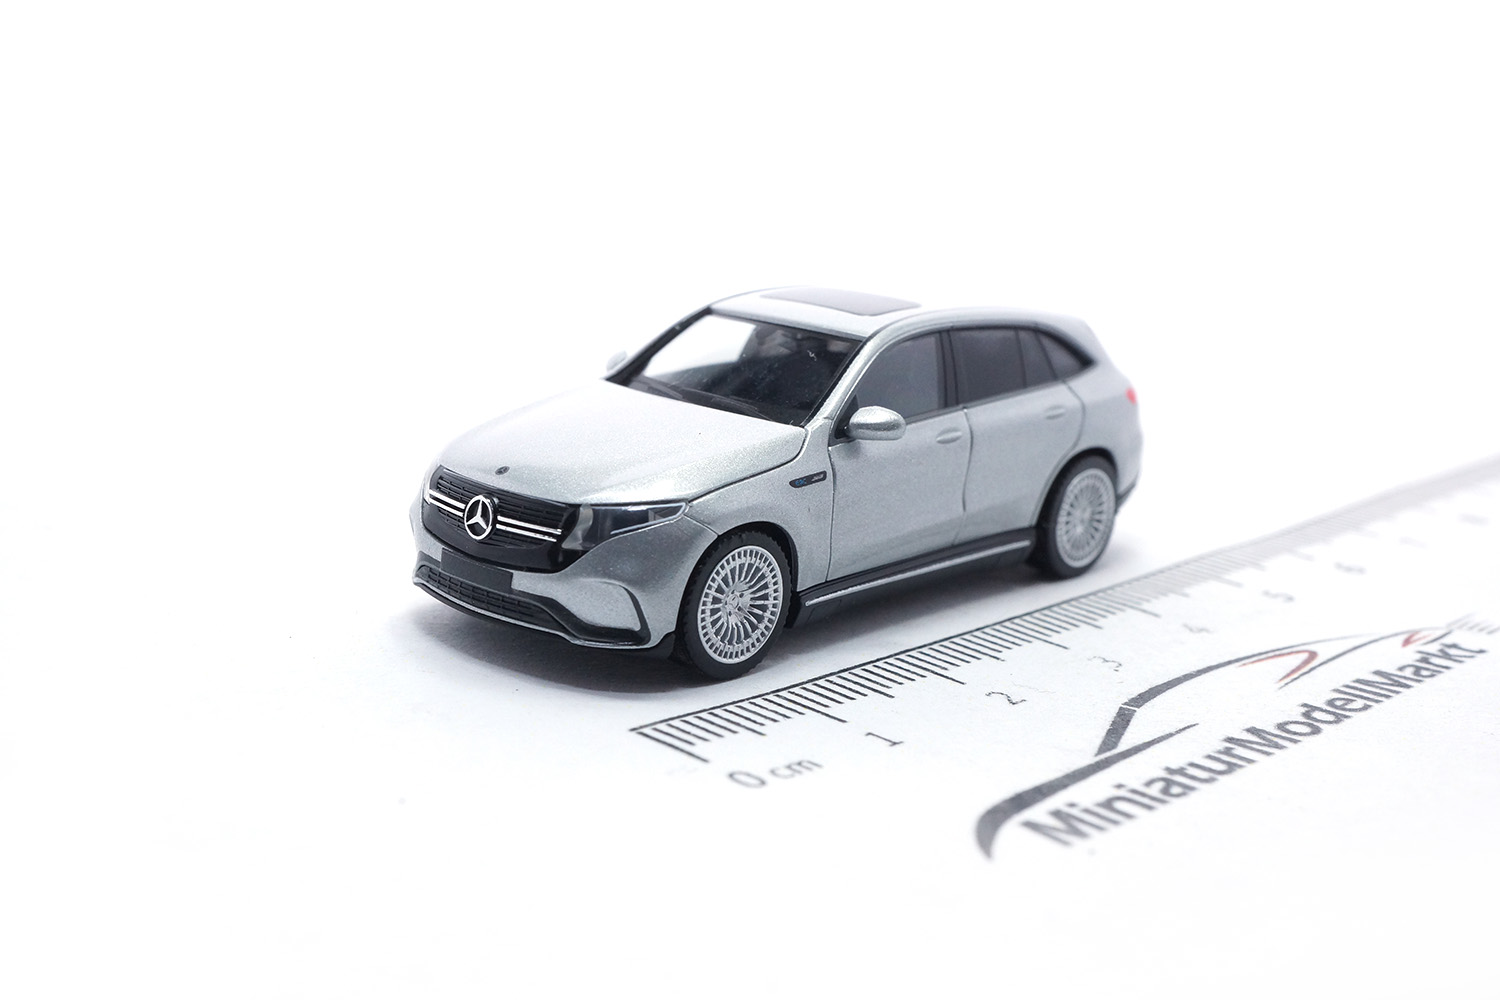 Herpa 430715-002 Mercedes-Benz EQC AMG, hightechsilber 1:87